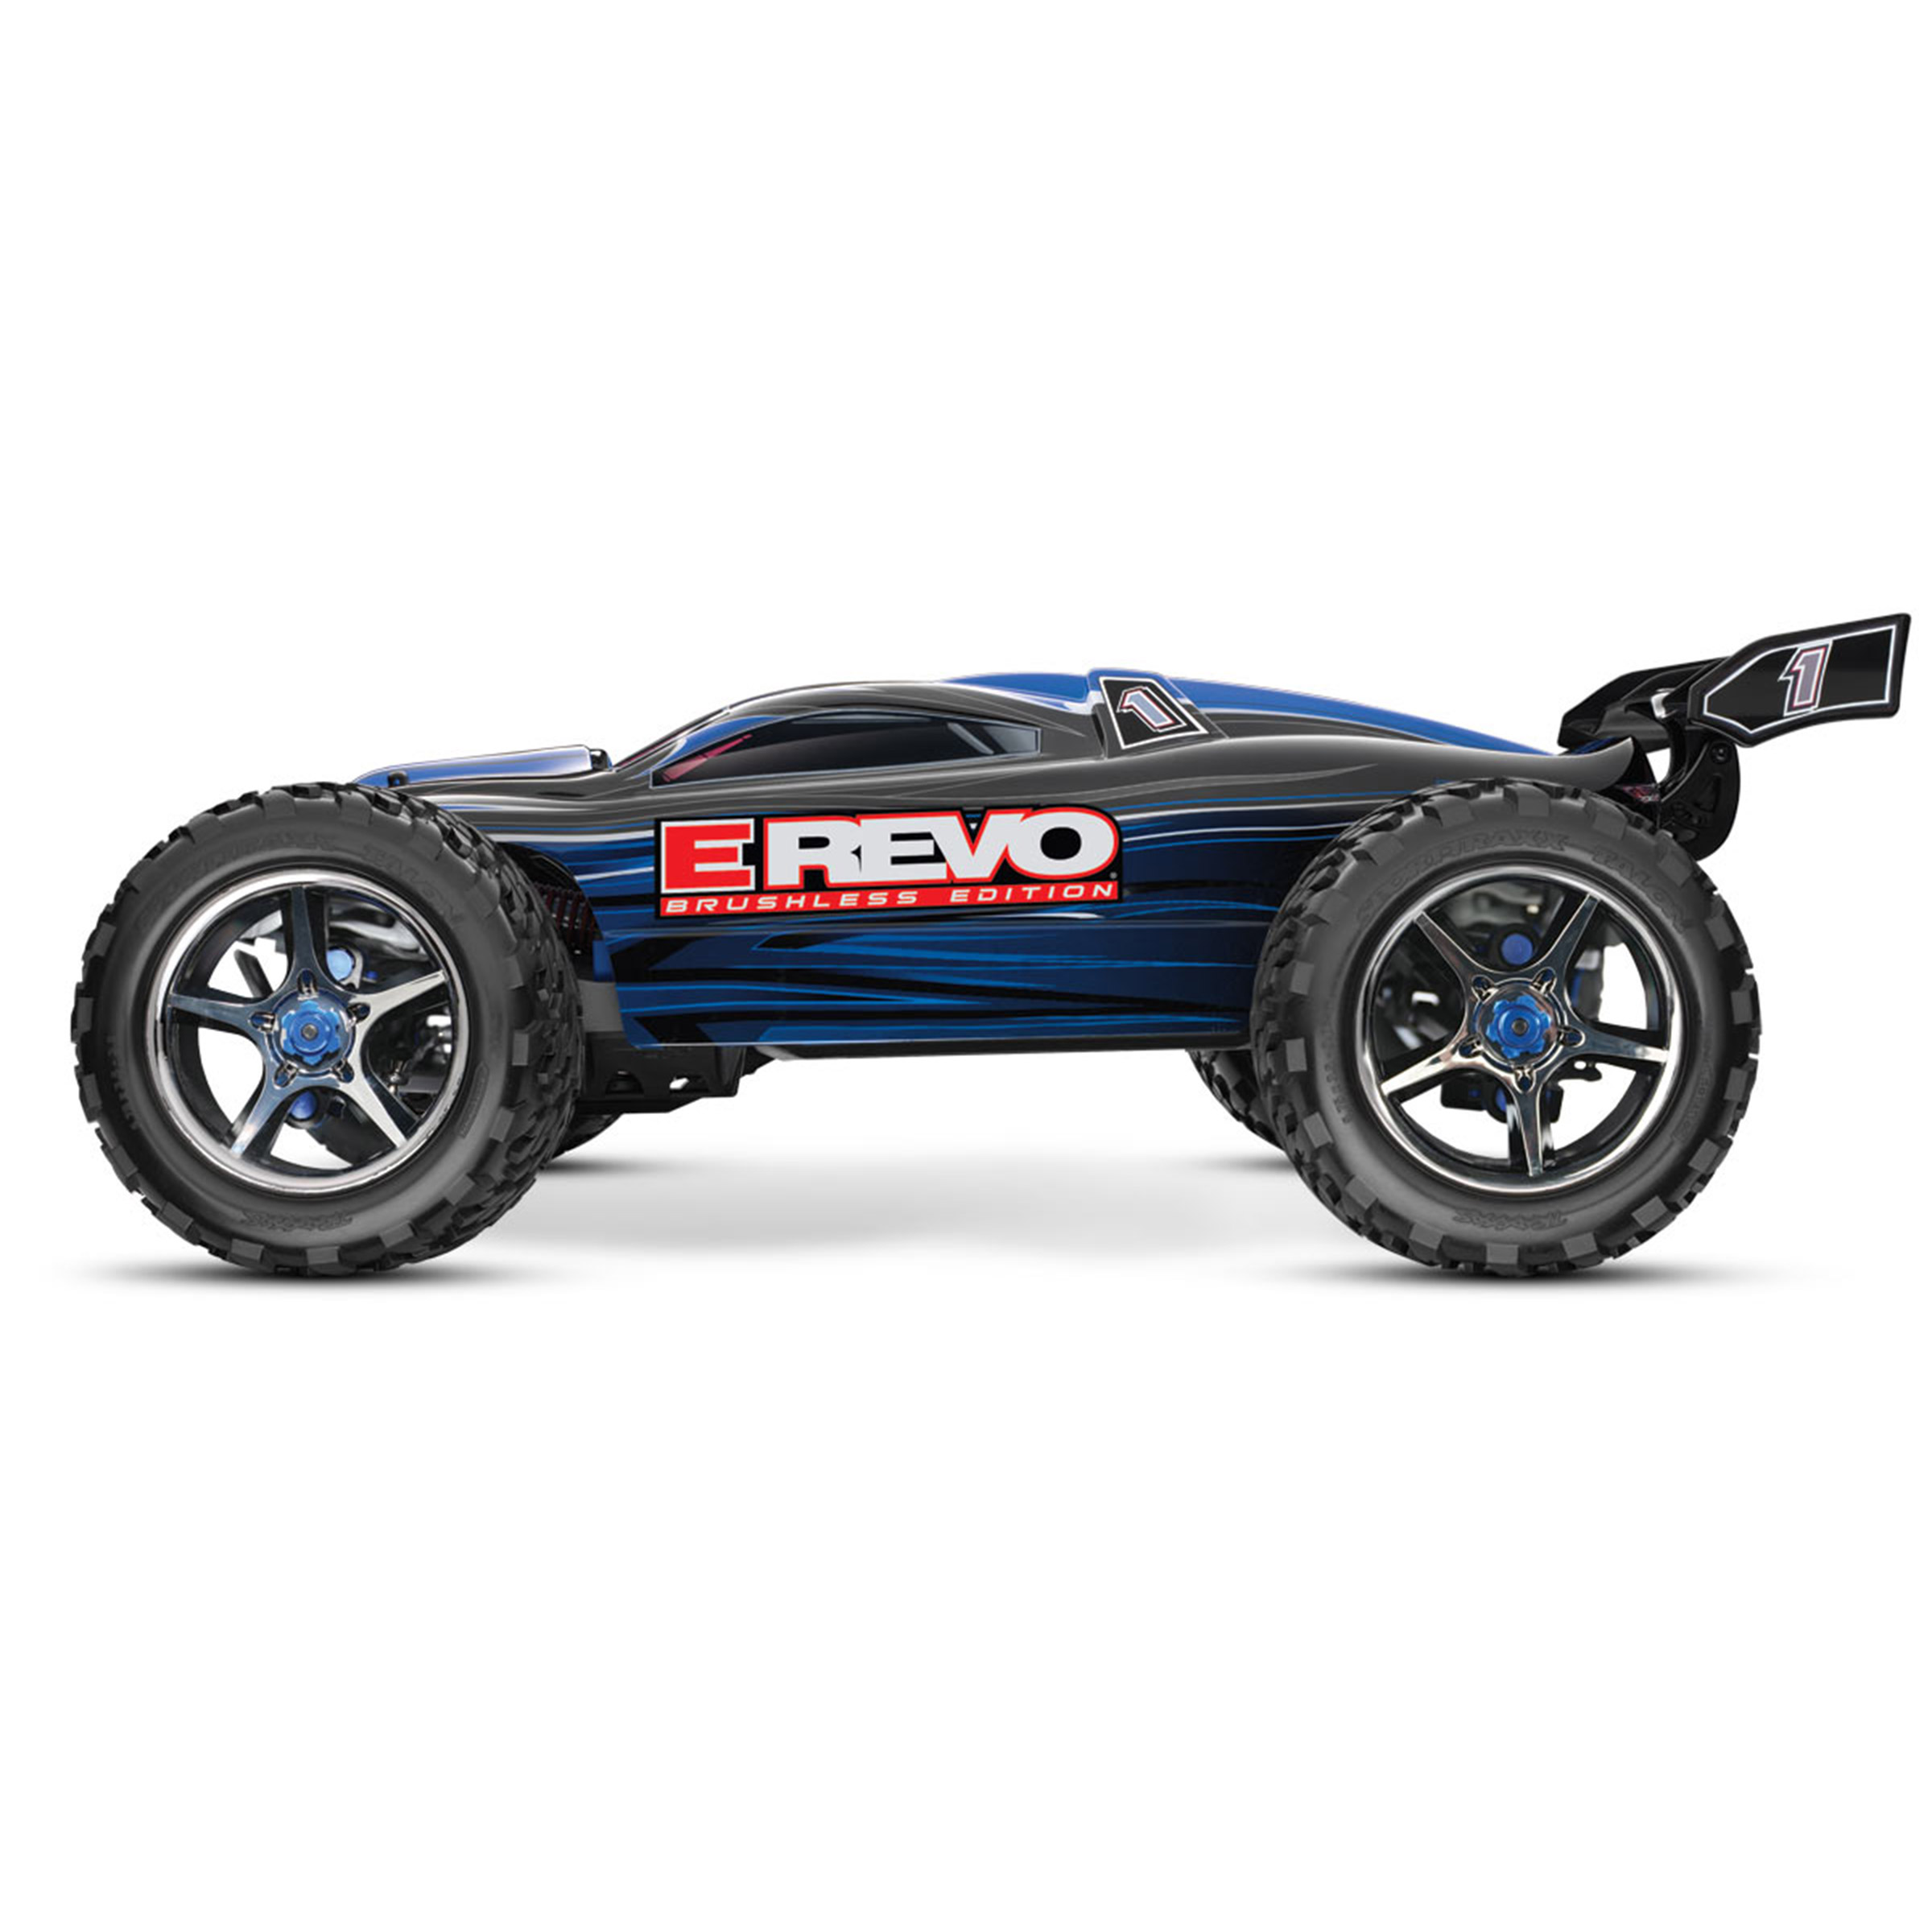 fastest rc car ever with Traxxas 5608 E Revo Blue Rc Monster Truck on Mercedes Amg C63 S Coupe Review besides New Toyota Supra Course 2018 Launch besides X 15 furthermore Beginners Guide further New Peugeot Rcz R Sports Car Details Pictures.